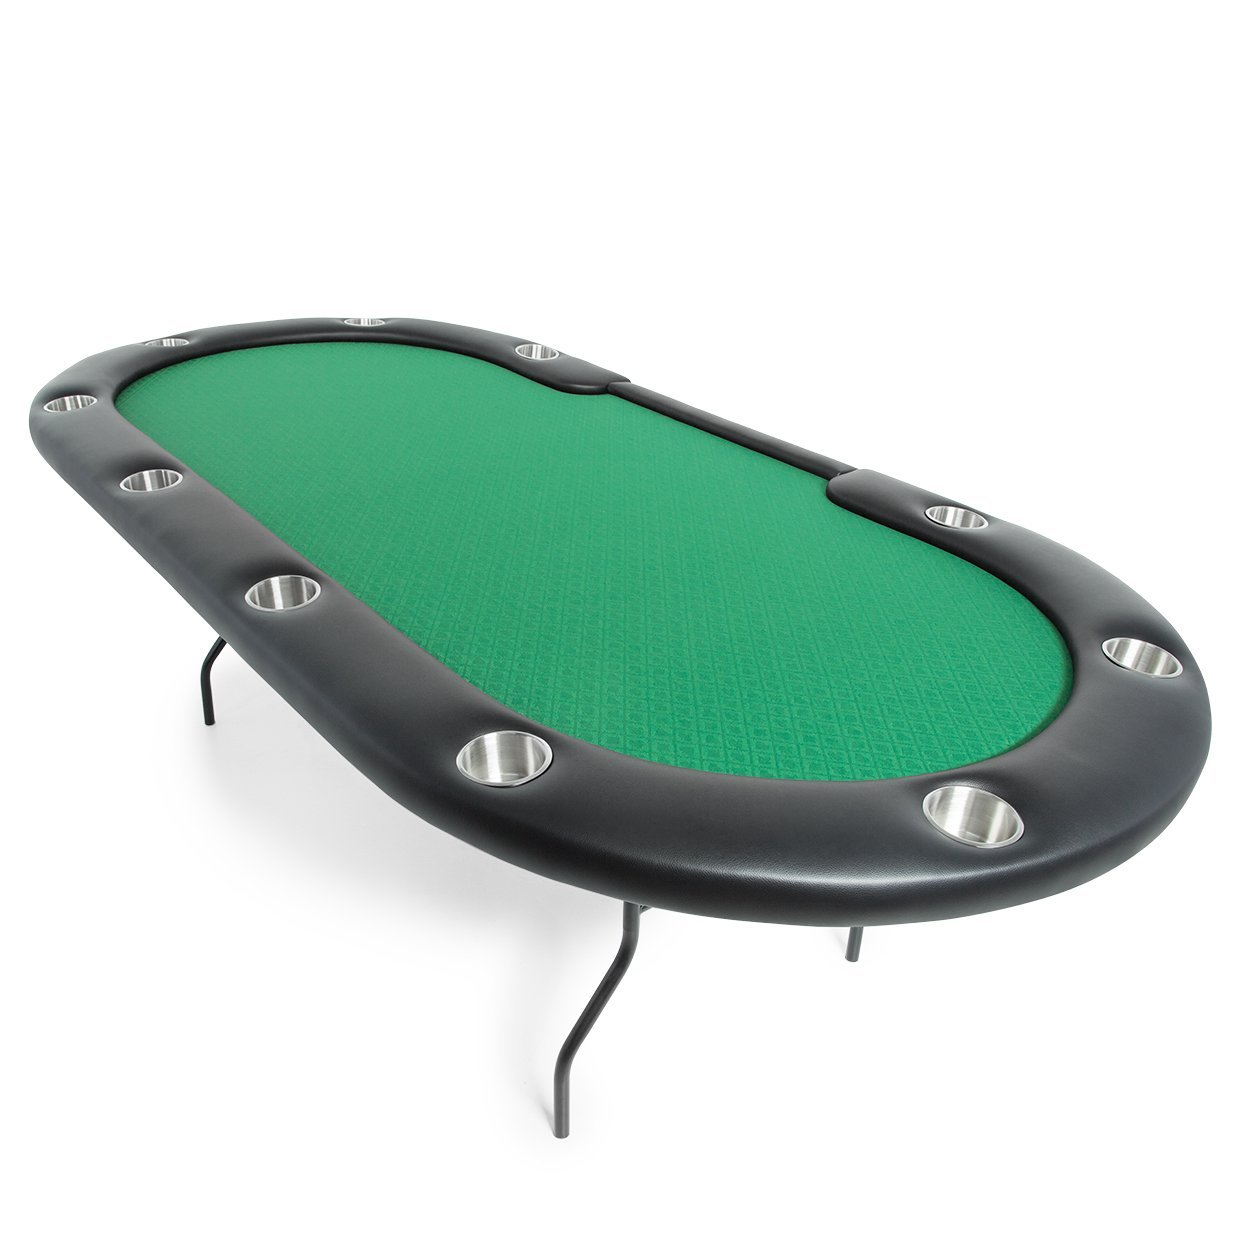 BBO Poker Aces Pro Folding Poker Table for 10 Players with Green Speed Cloth Playing Surface, 96-Inch Oval